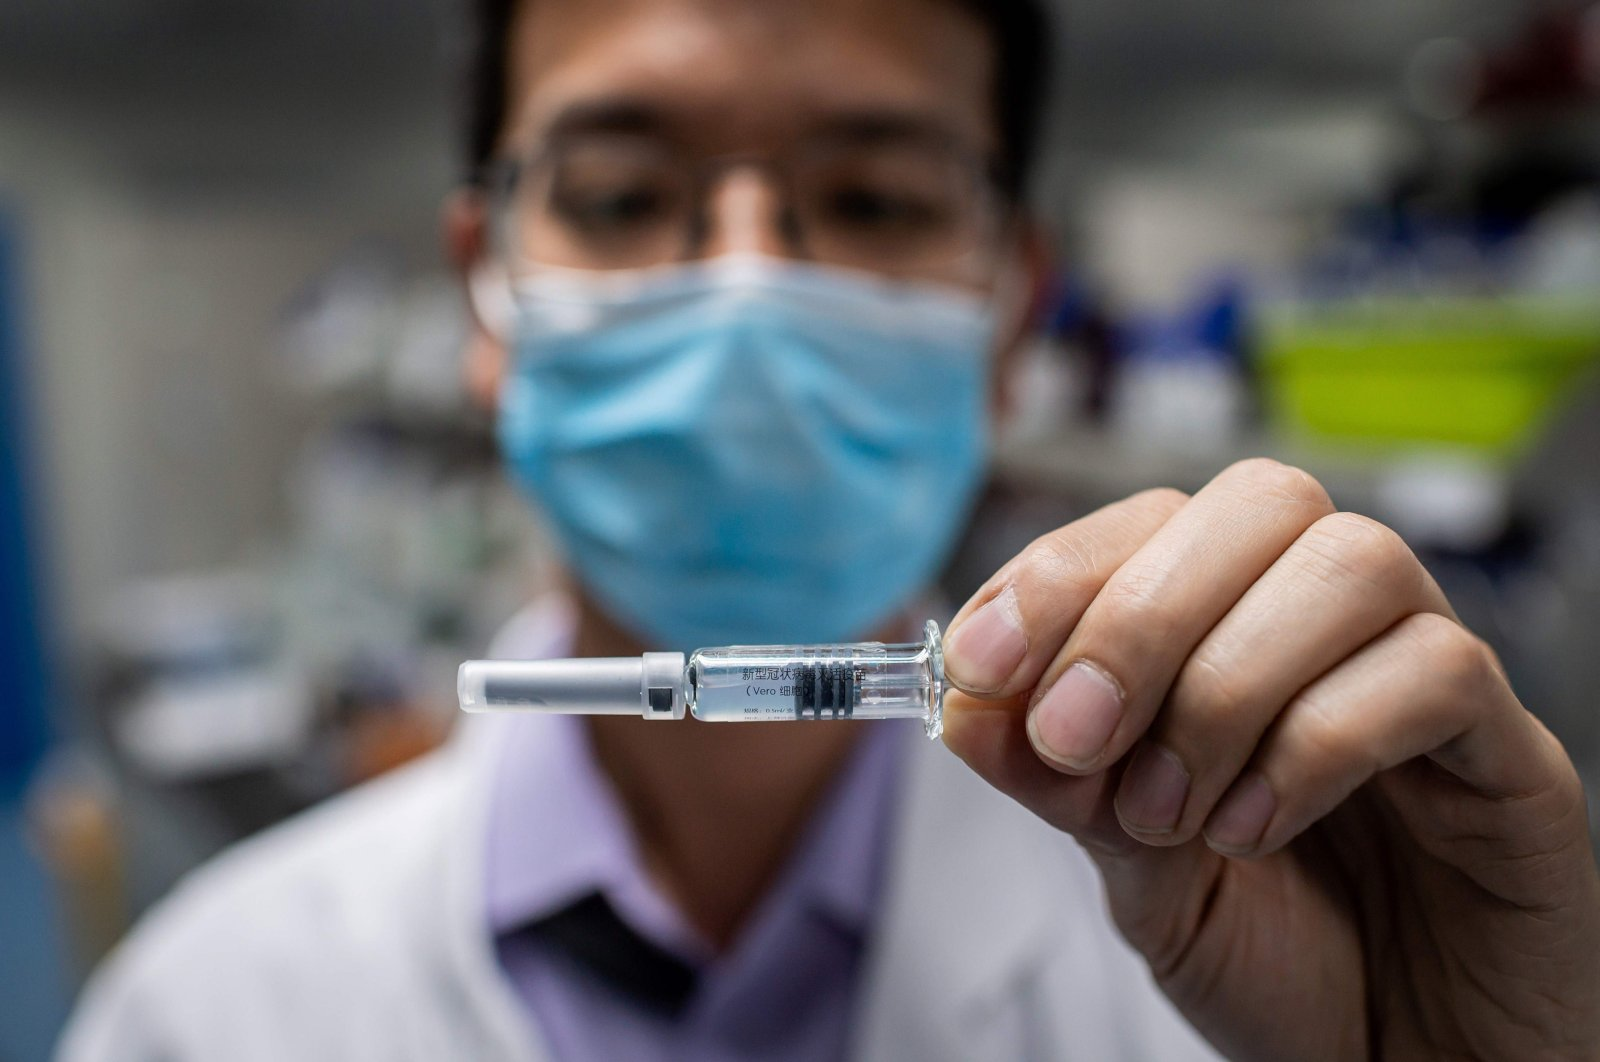 An engineer shows an experimental vaccine for COVID-19 that was tested at the Quality Control Laboratory at the Sinovac Biotech facilities, Beijing. Apr. 29, 2020. (AFP Photo)